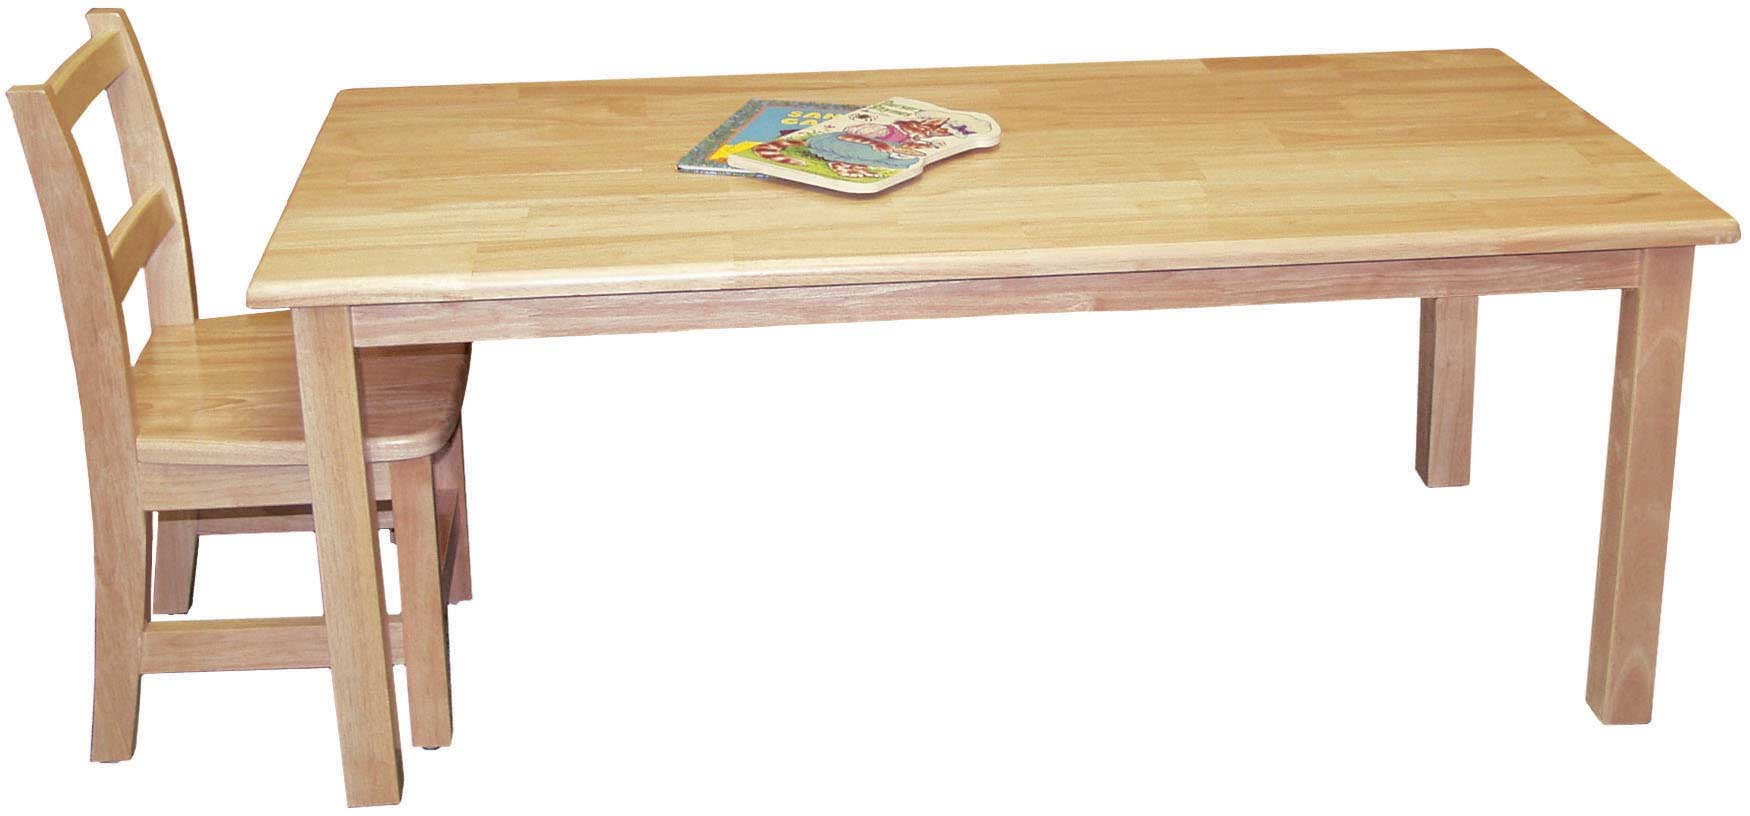 Solid Wood Folding Table and Chair Design